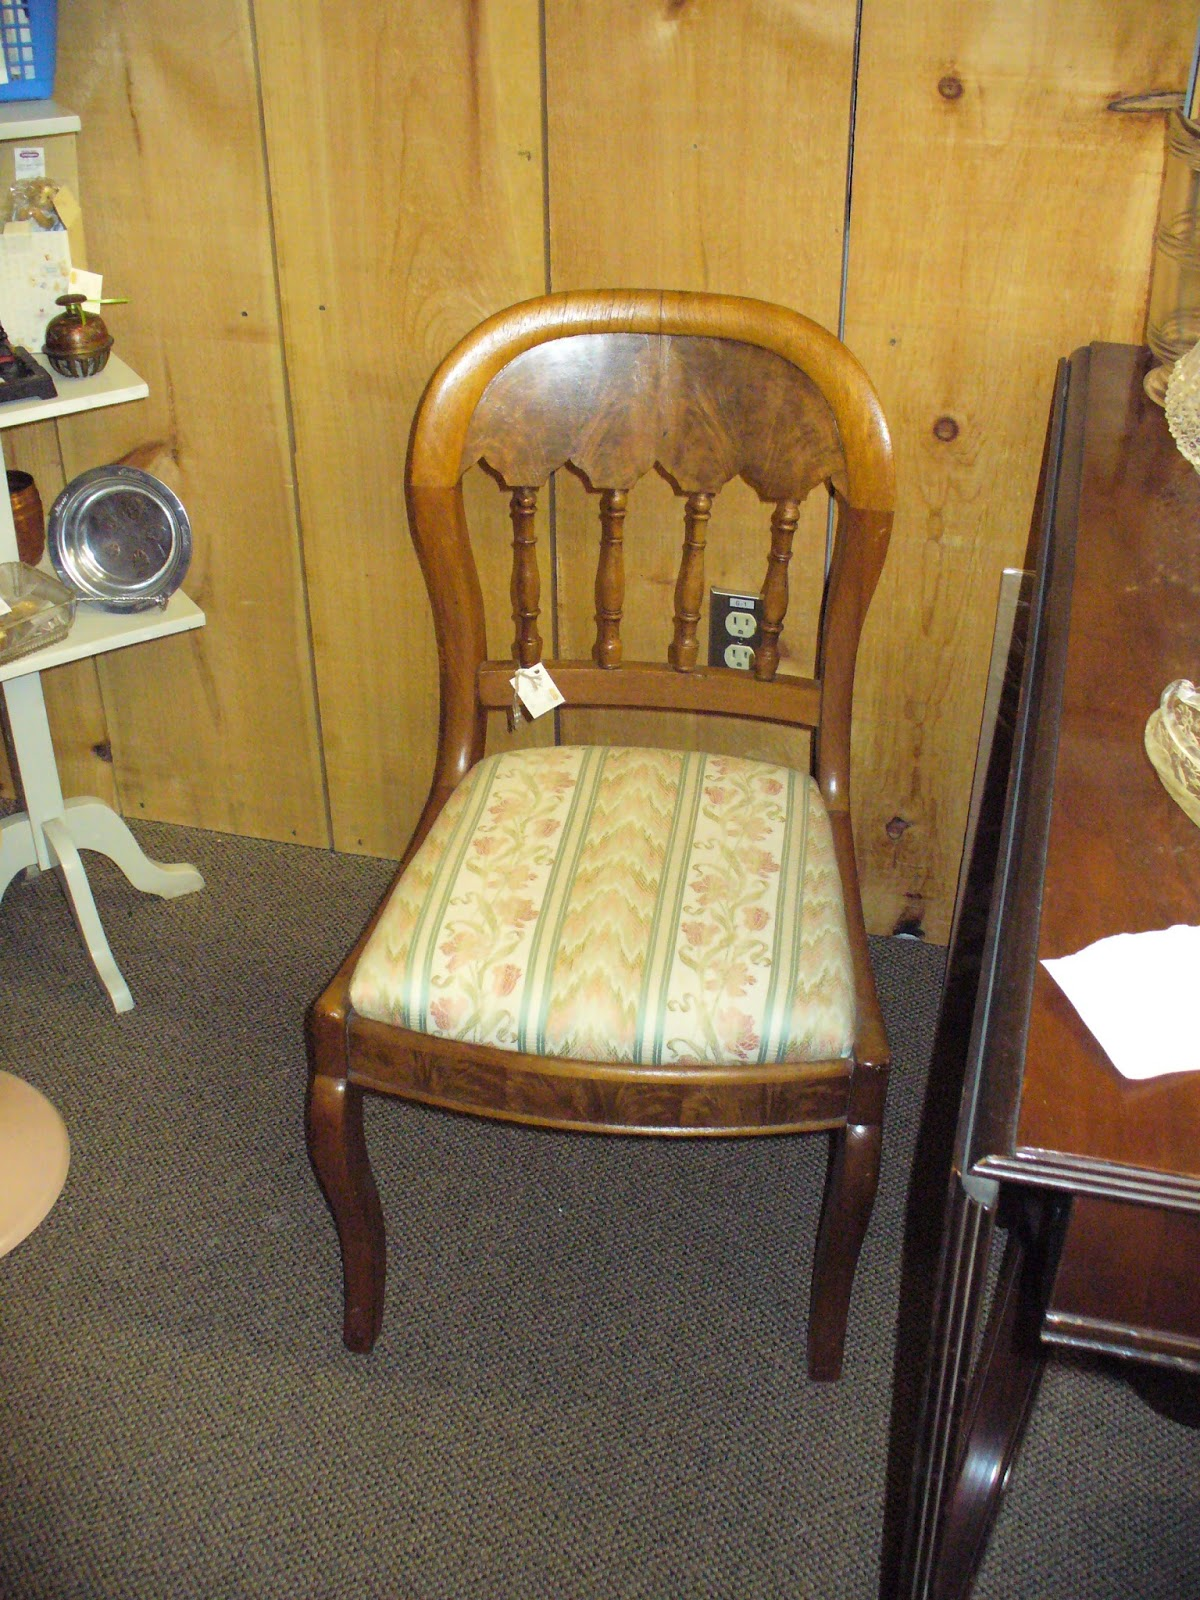 So Back On June 10th, In Market Roads Antiques, We Spotted These Two Chairs.